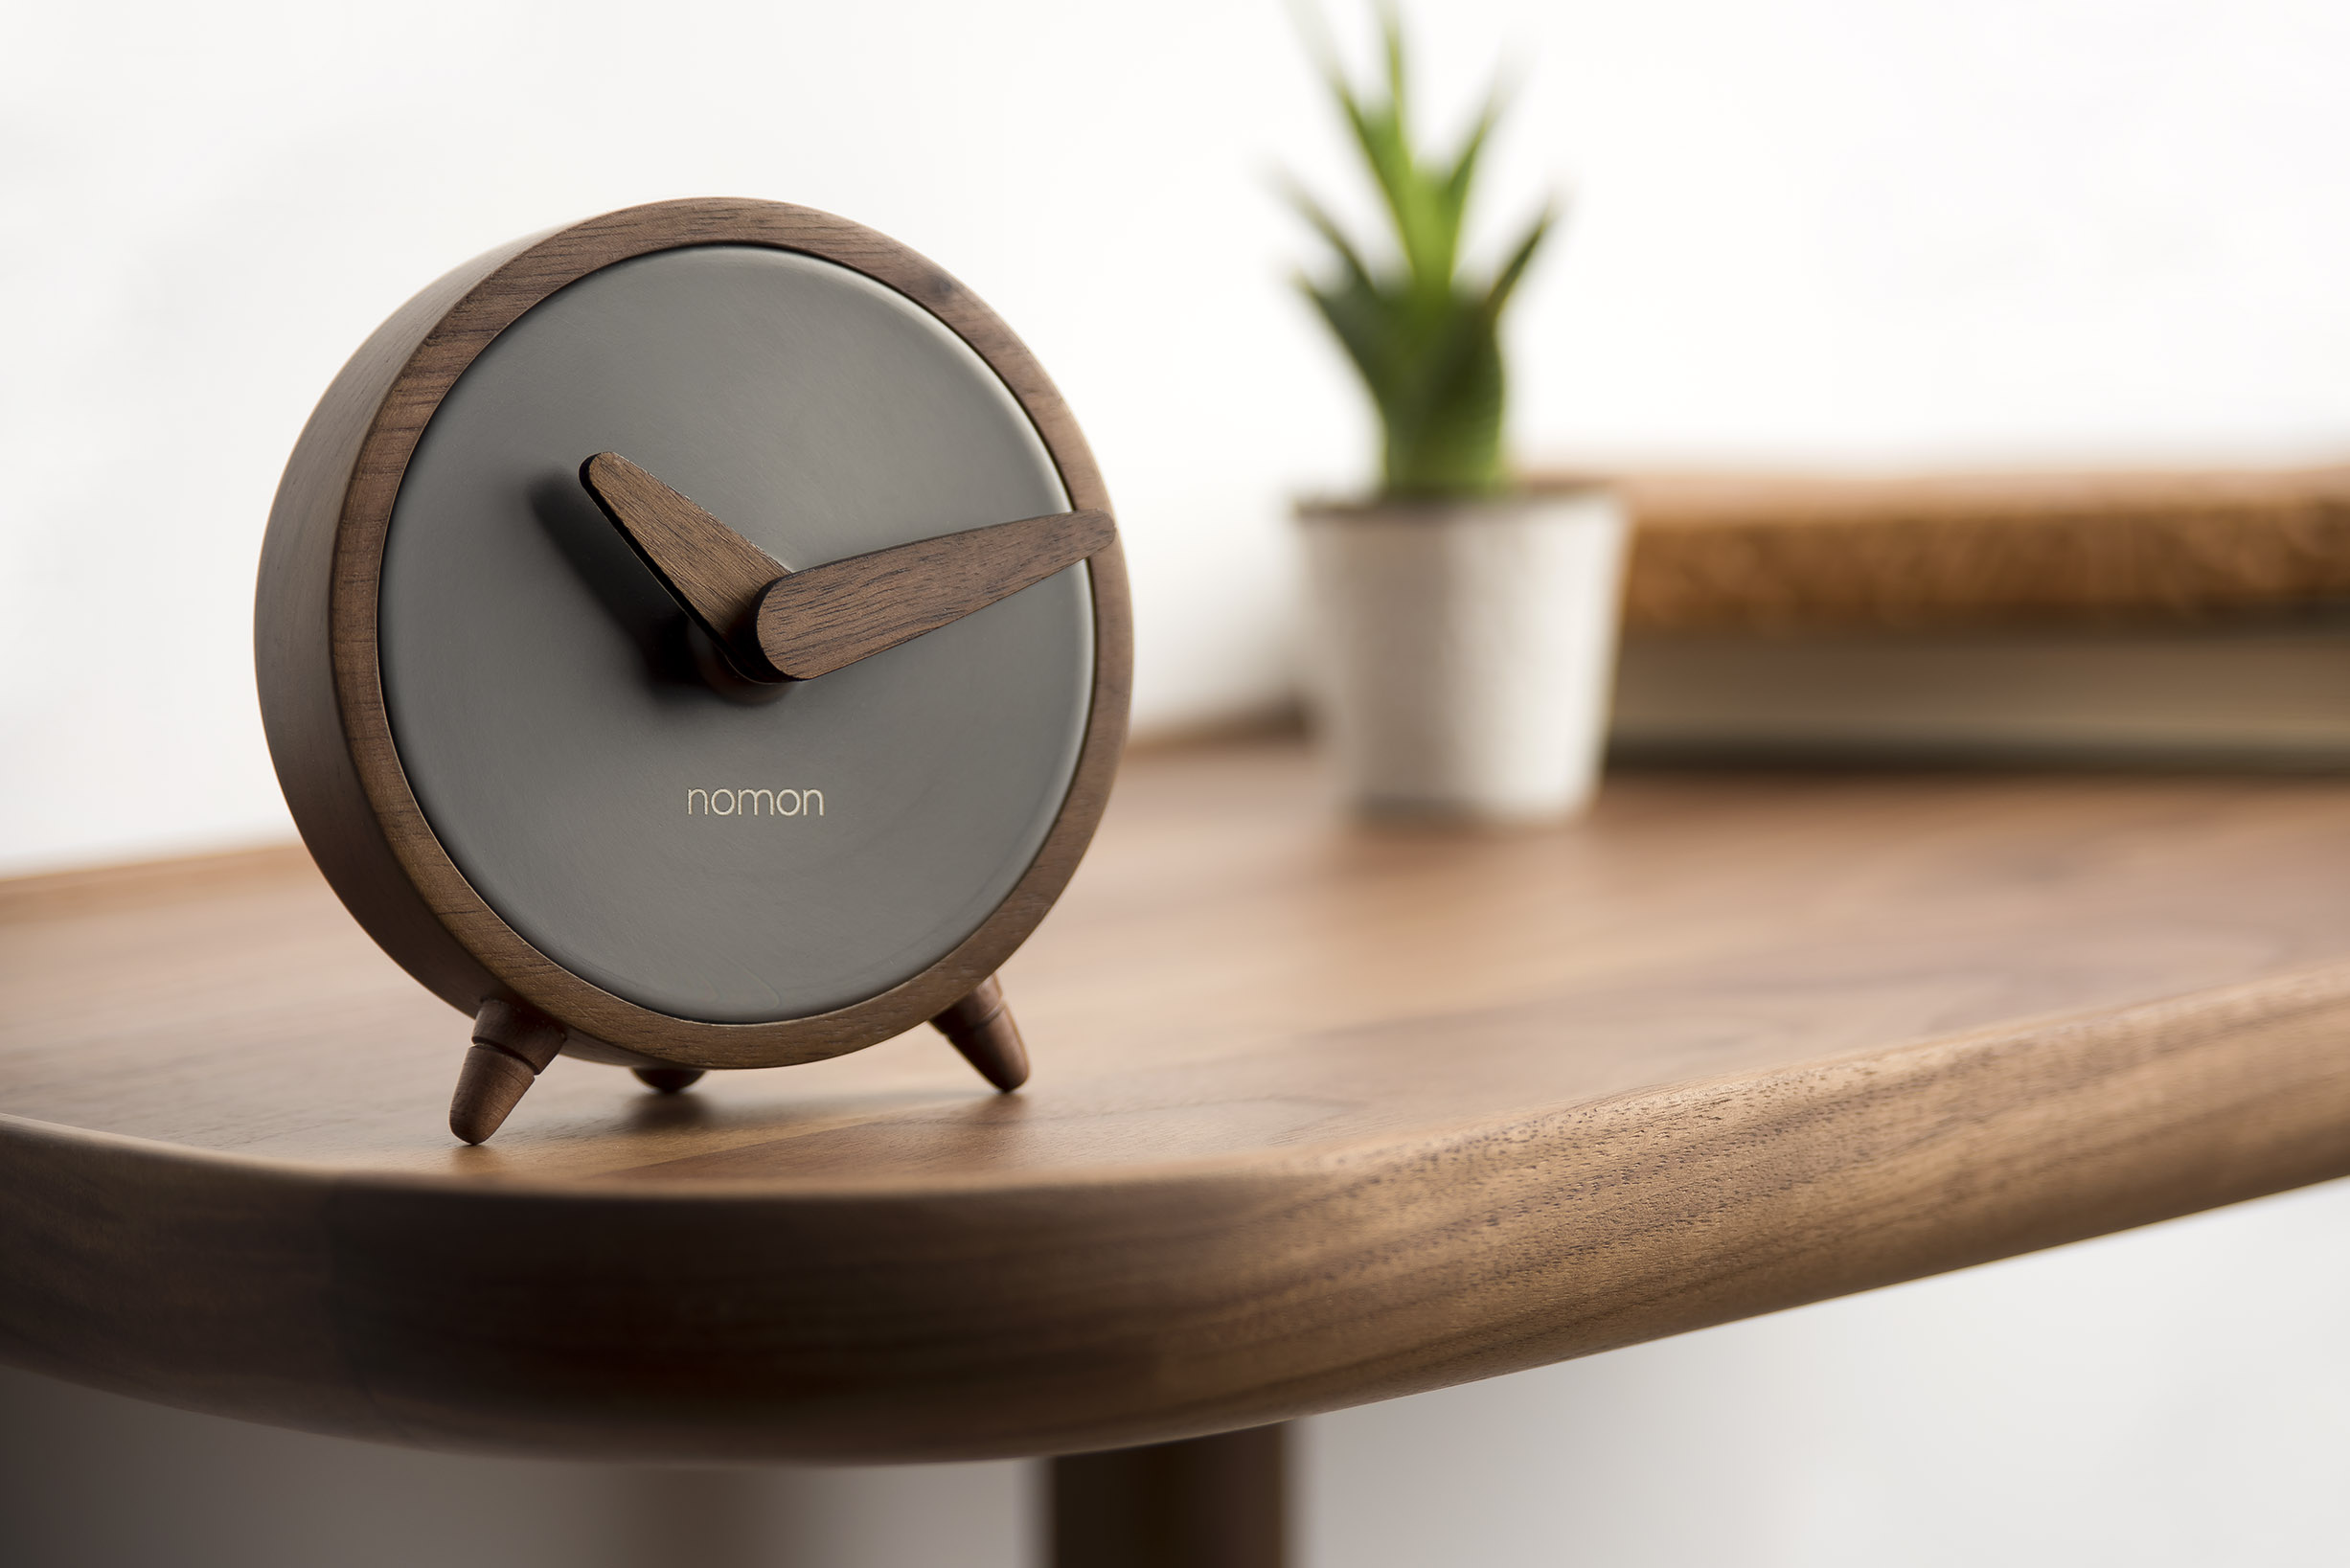 Graphite Wallnut Design Clock